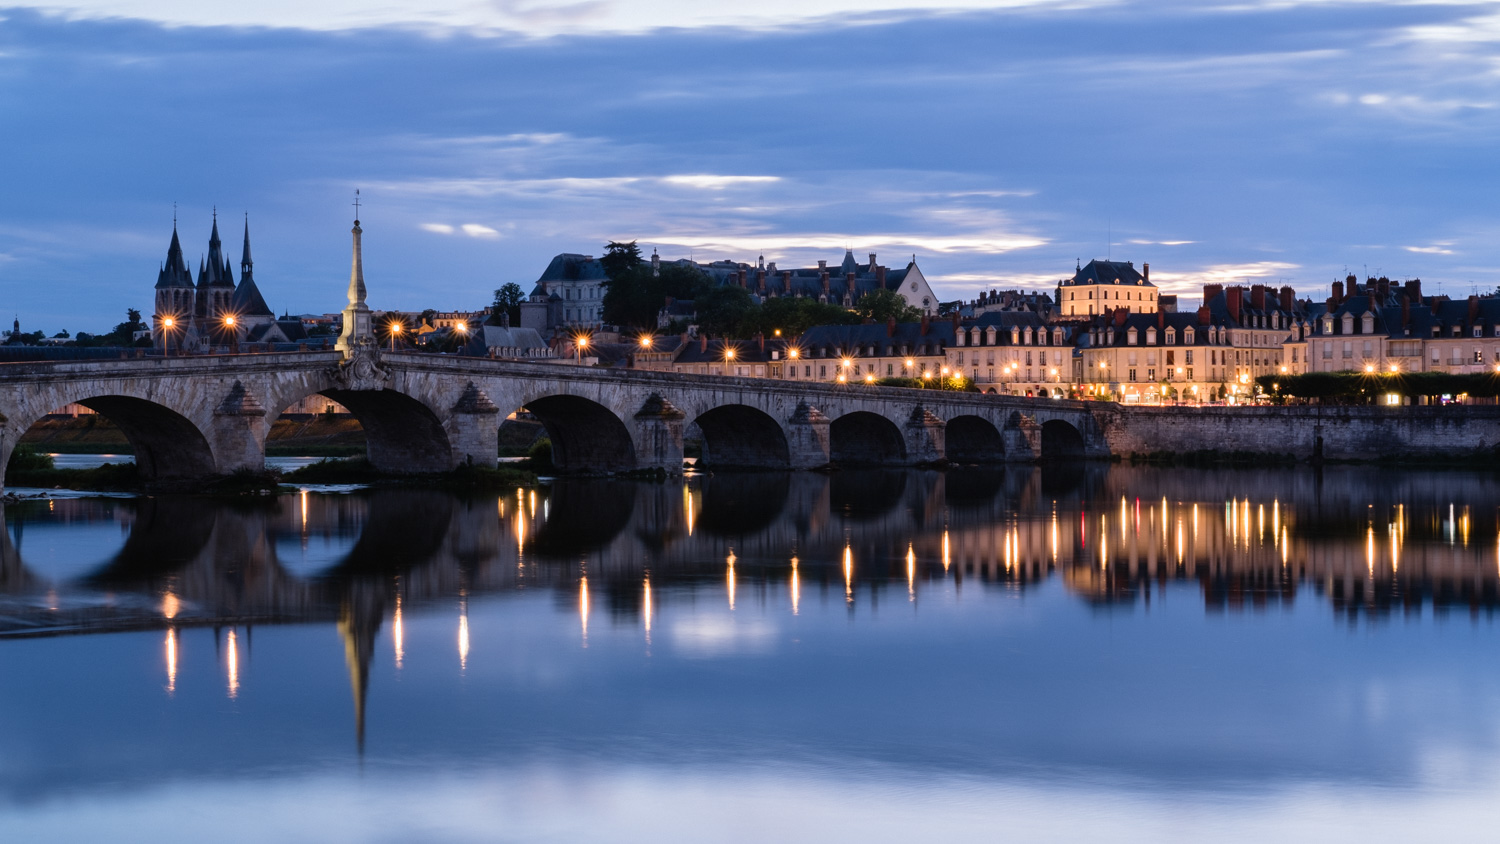 The city of Blois during Blue Hour